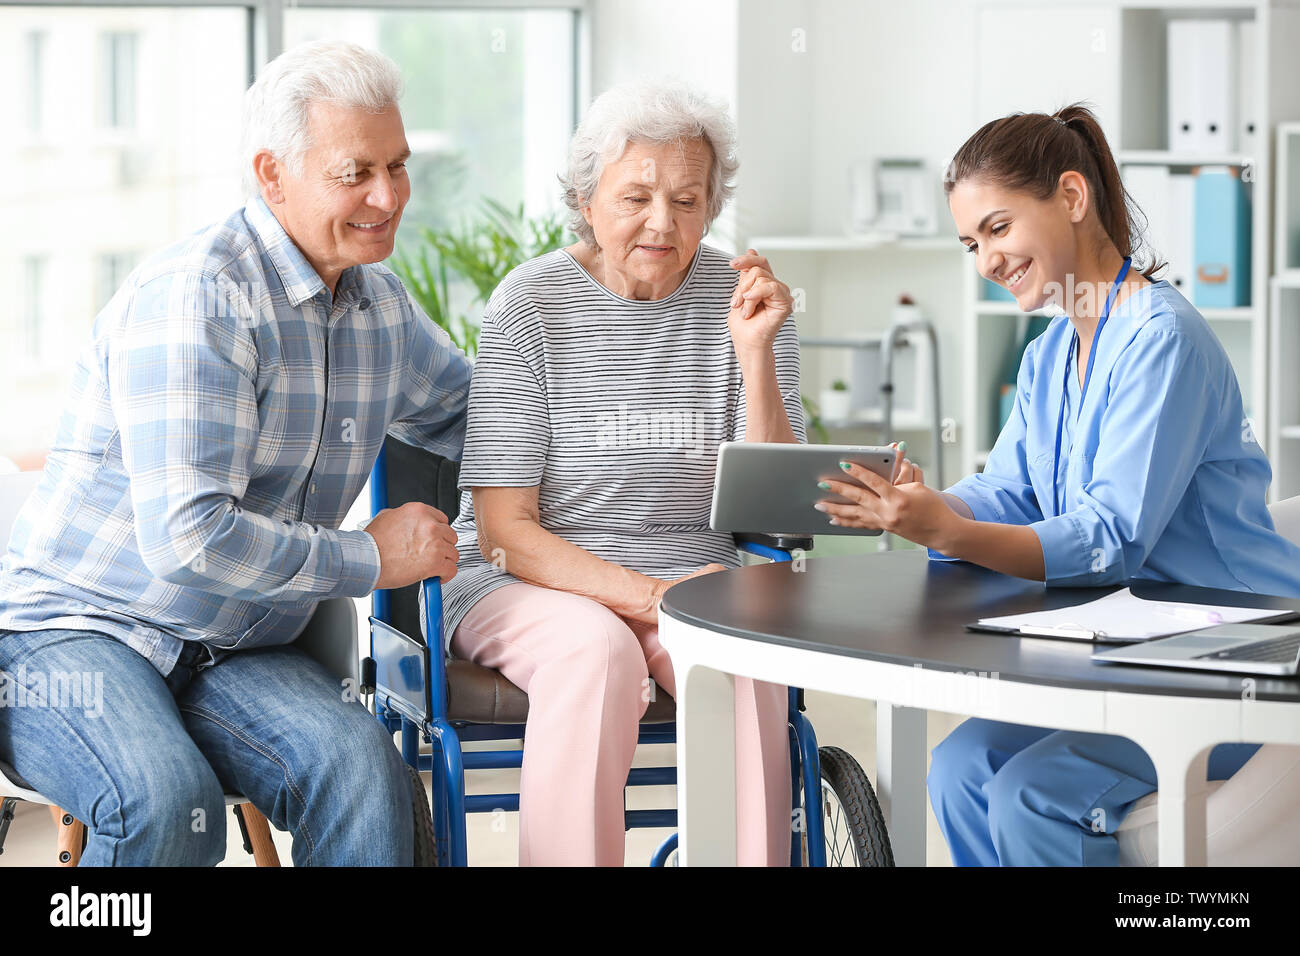 Elderly People With Caregiver In Nursing Home Stock Photo Alamy